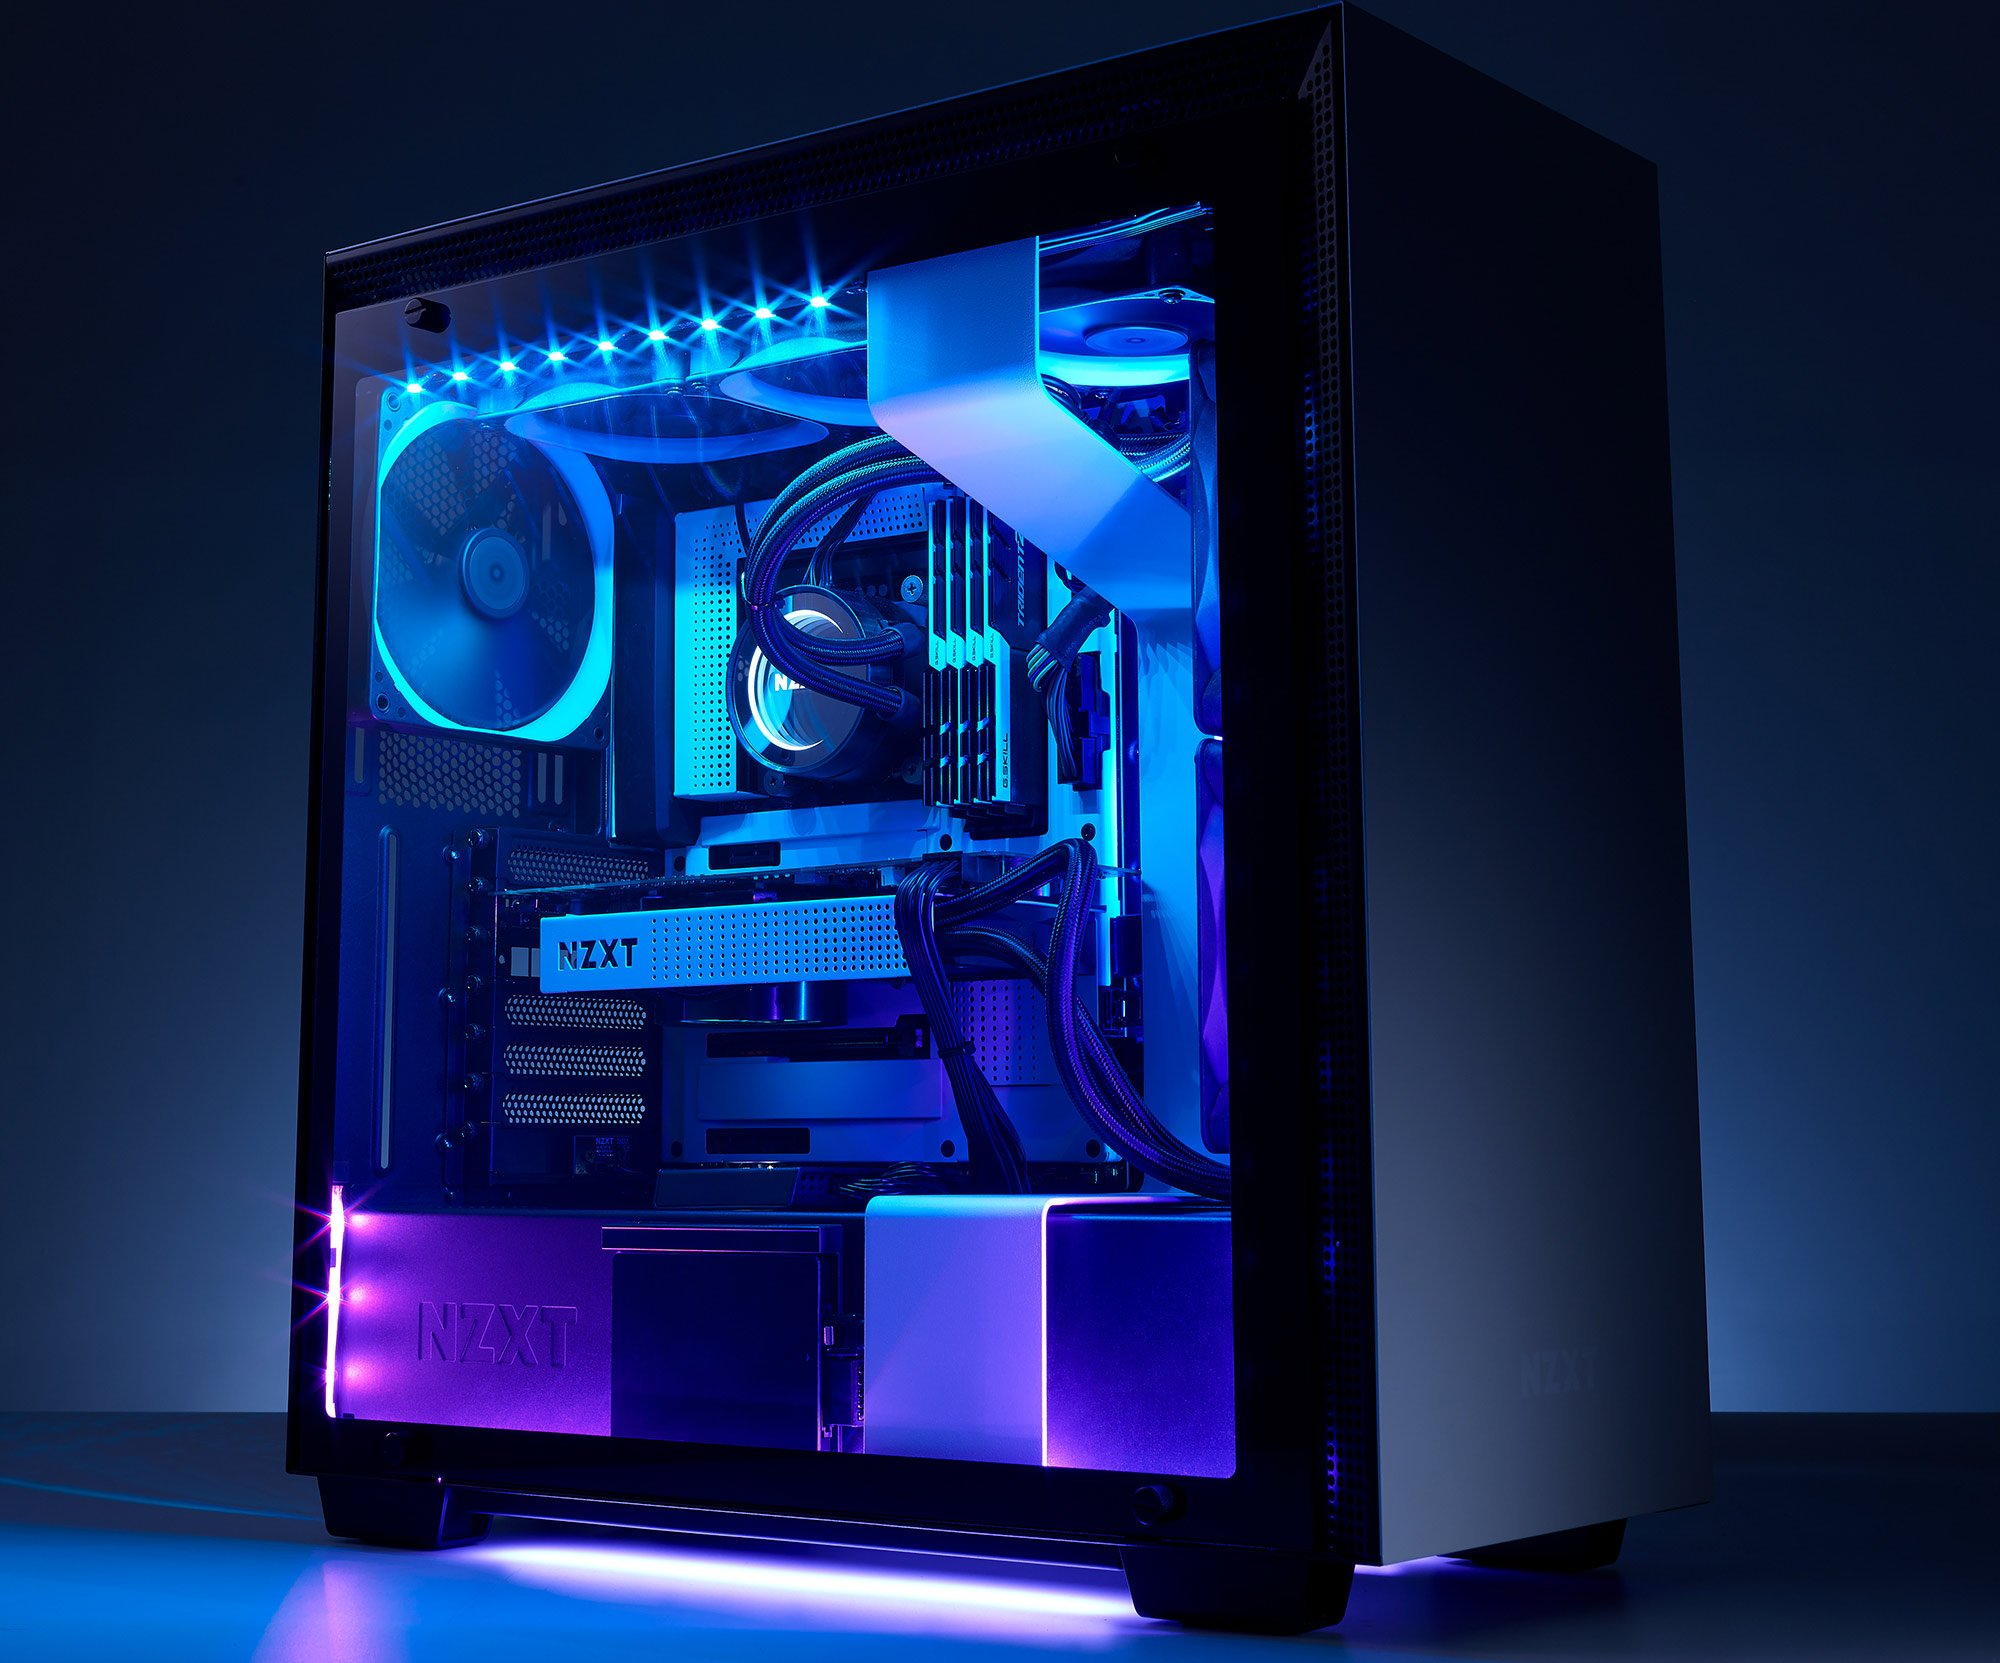 Lighting Rgb Nzxt Announces The Second Generation Of Hue 2 Rgb Lighting For